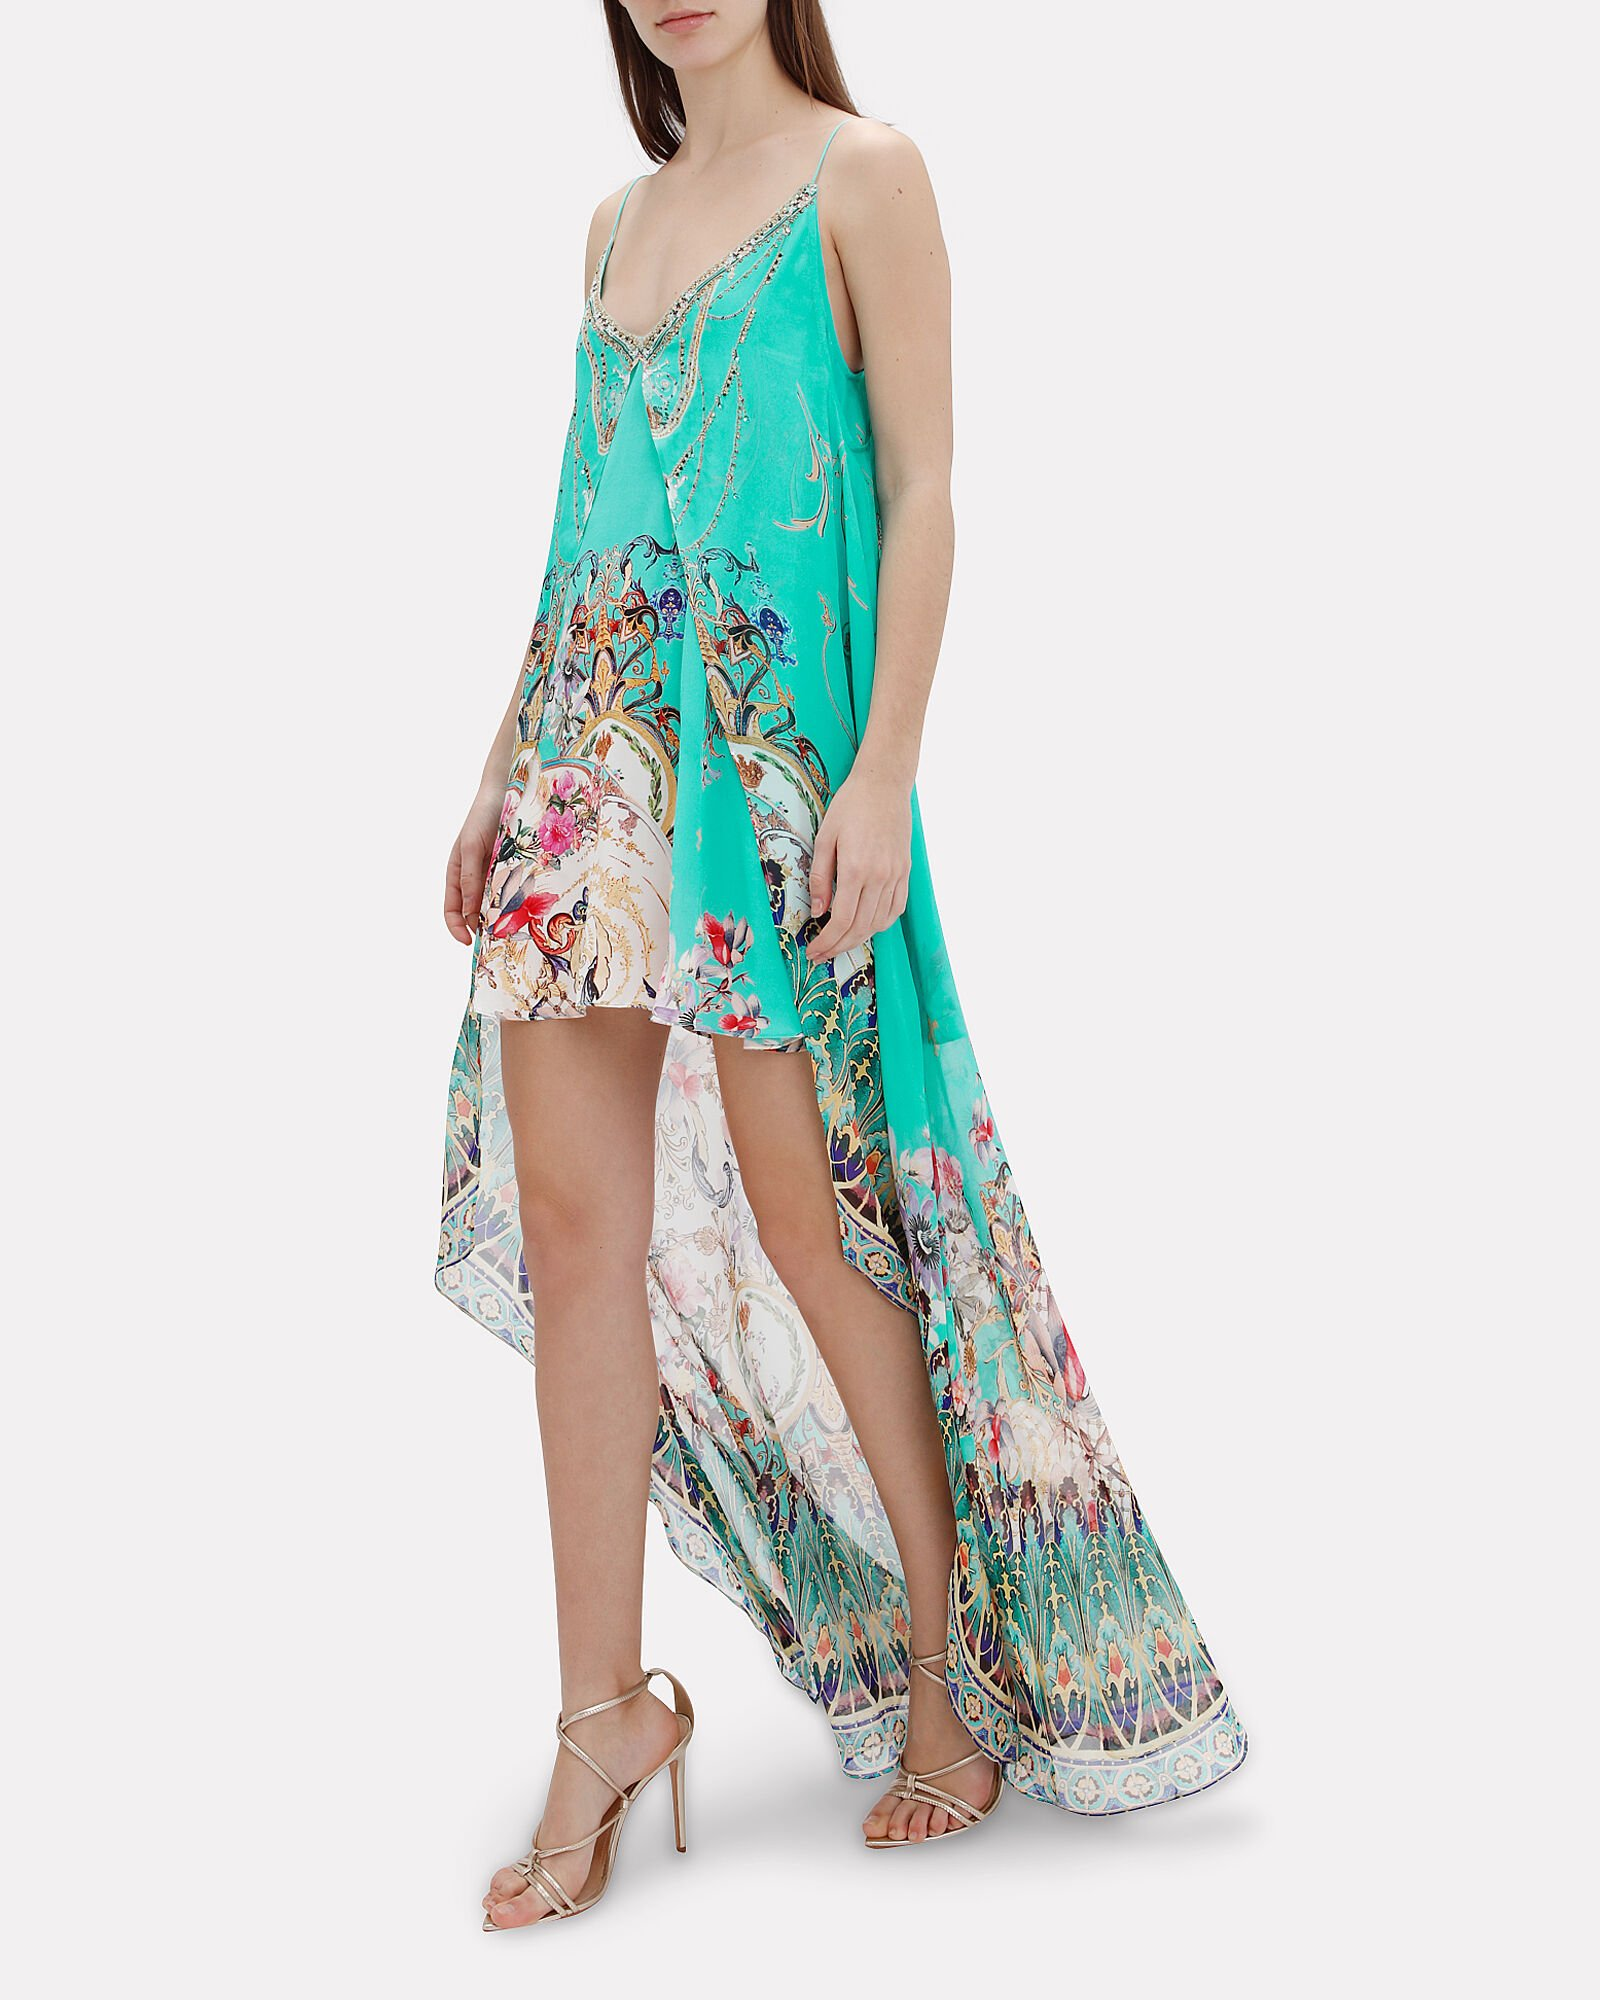 Overlay Printed High-Low Dress, TURQUOISE/ ABSTRACT, hi-res